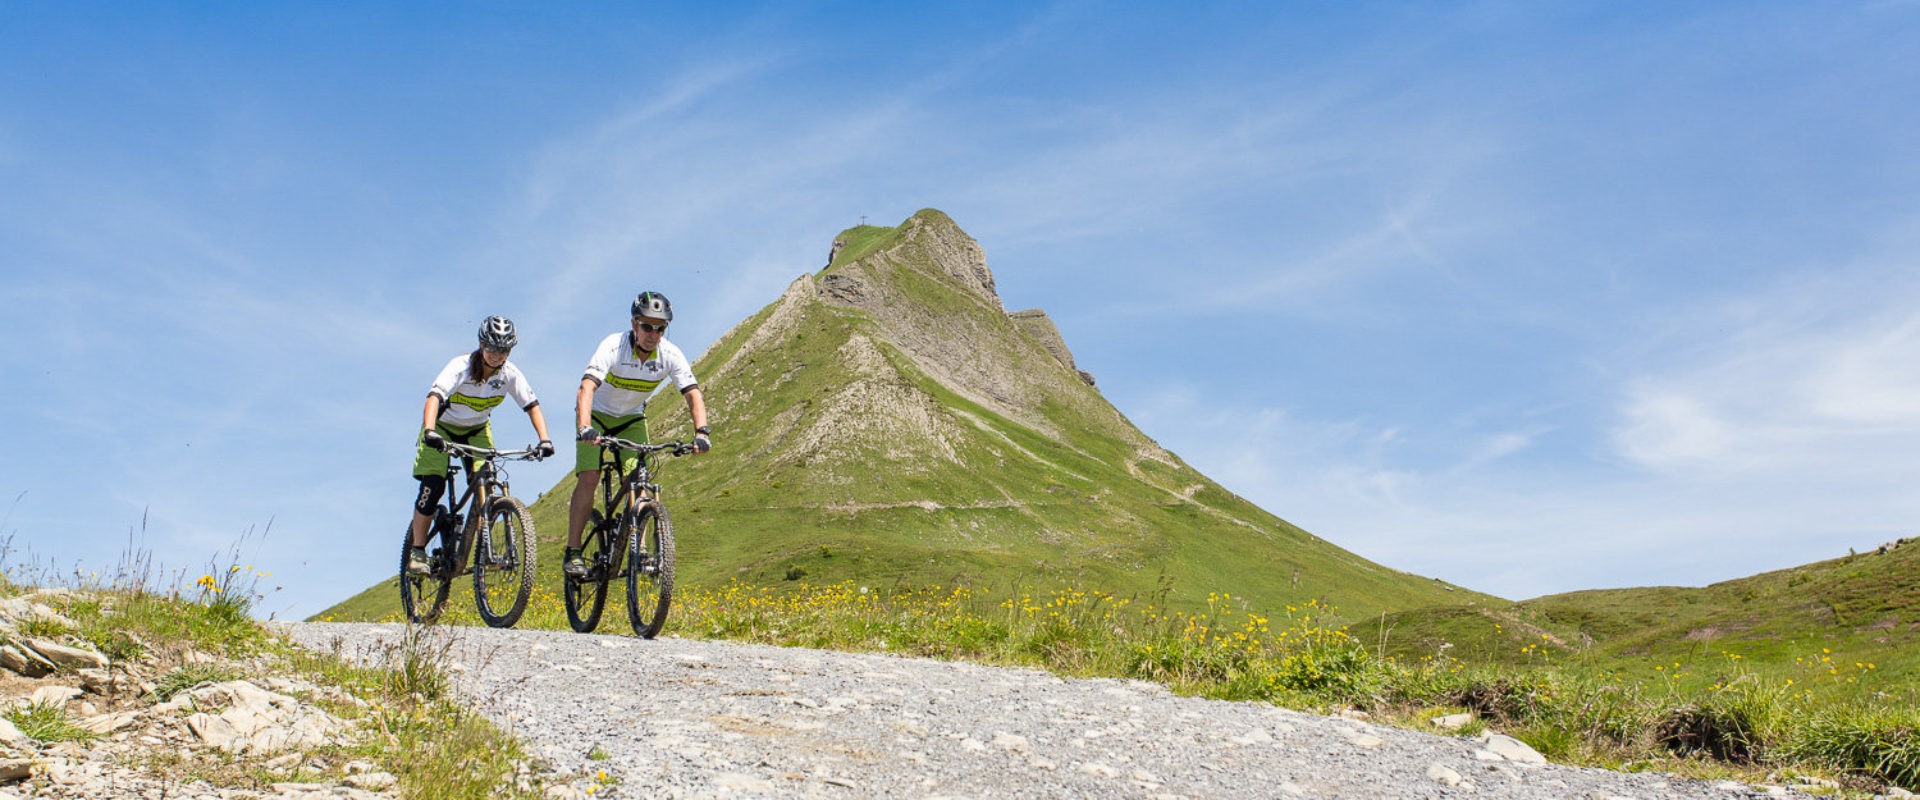 Mountainbike © Stephan Schatz undefined